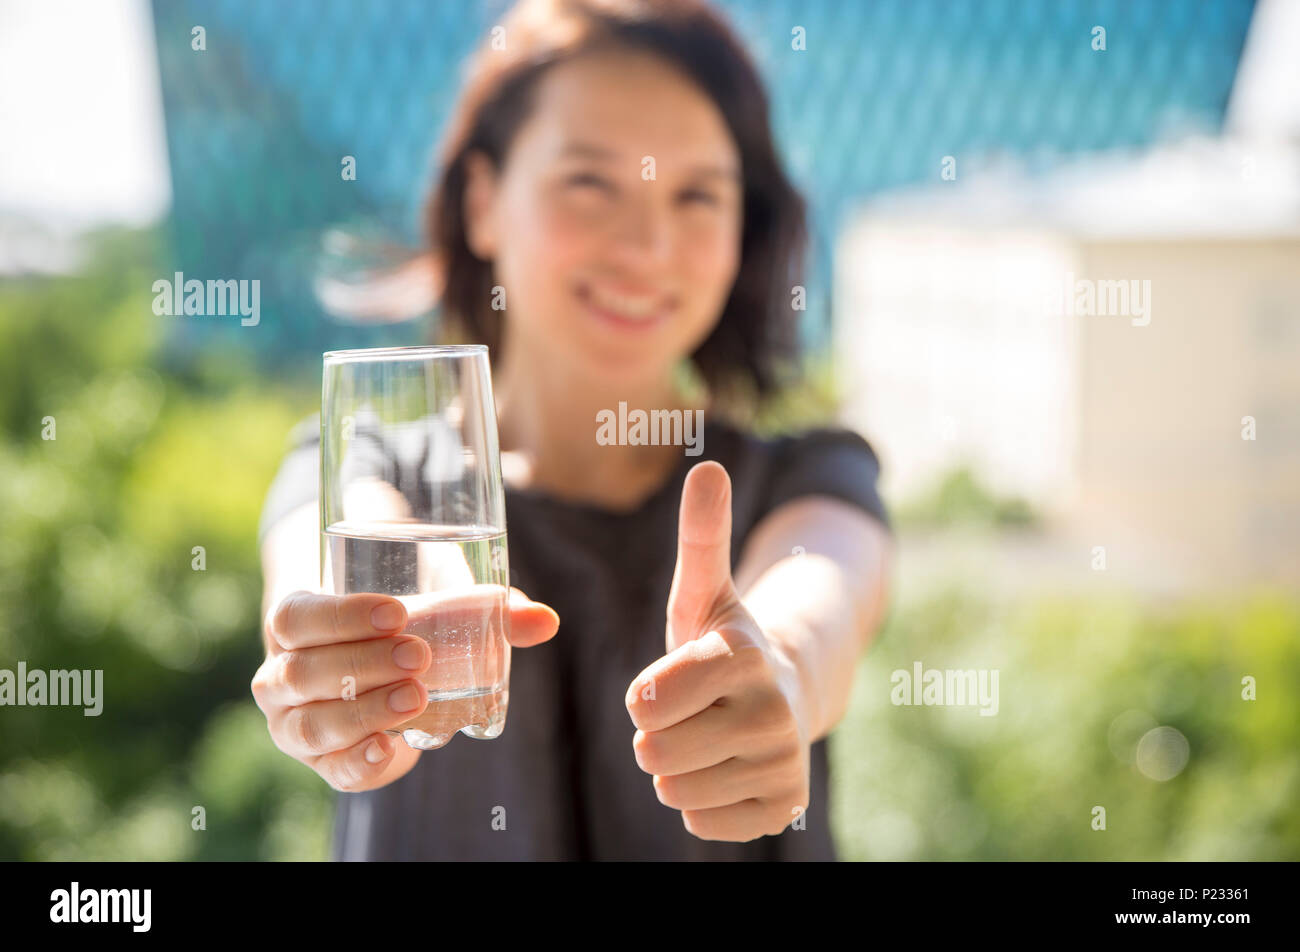 Young woman holding a glass of water recommend drinking water with thumb up - Stock Image